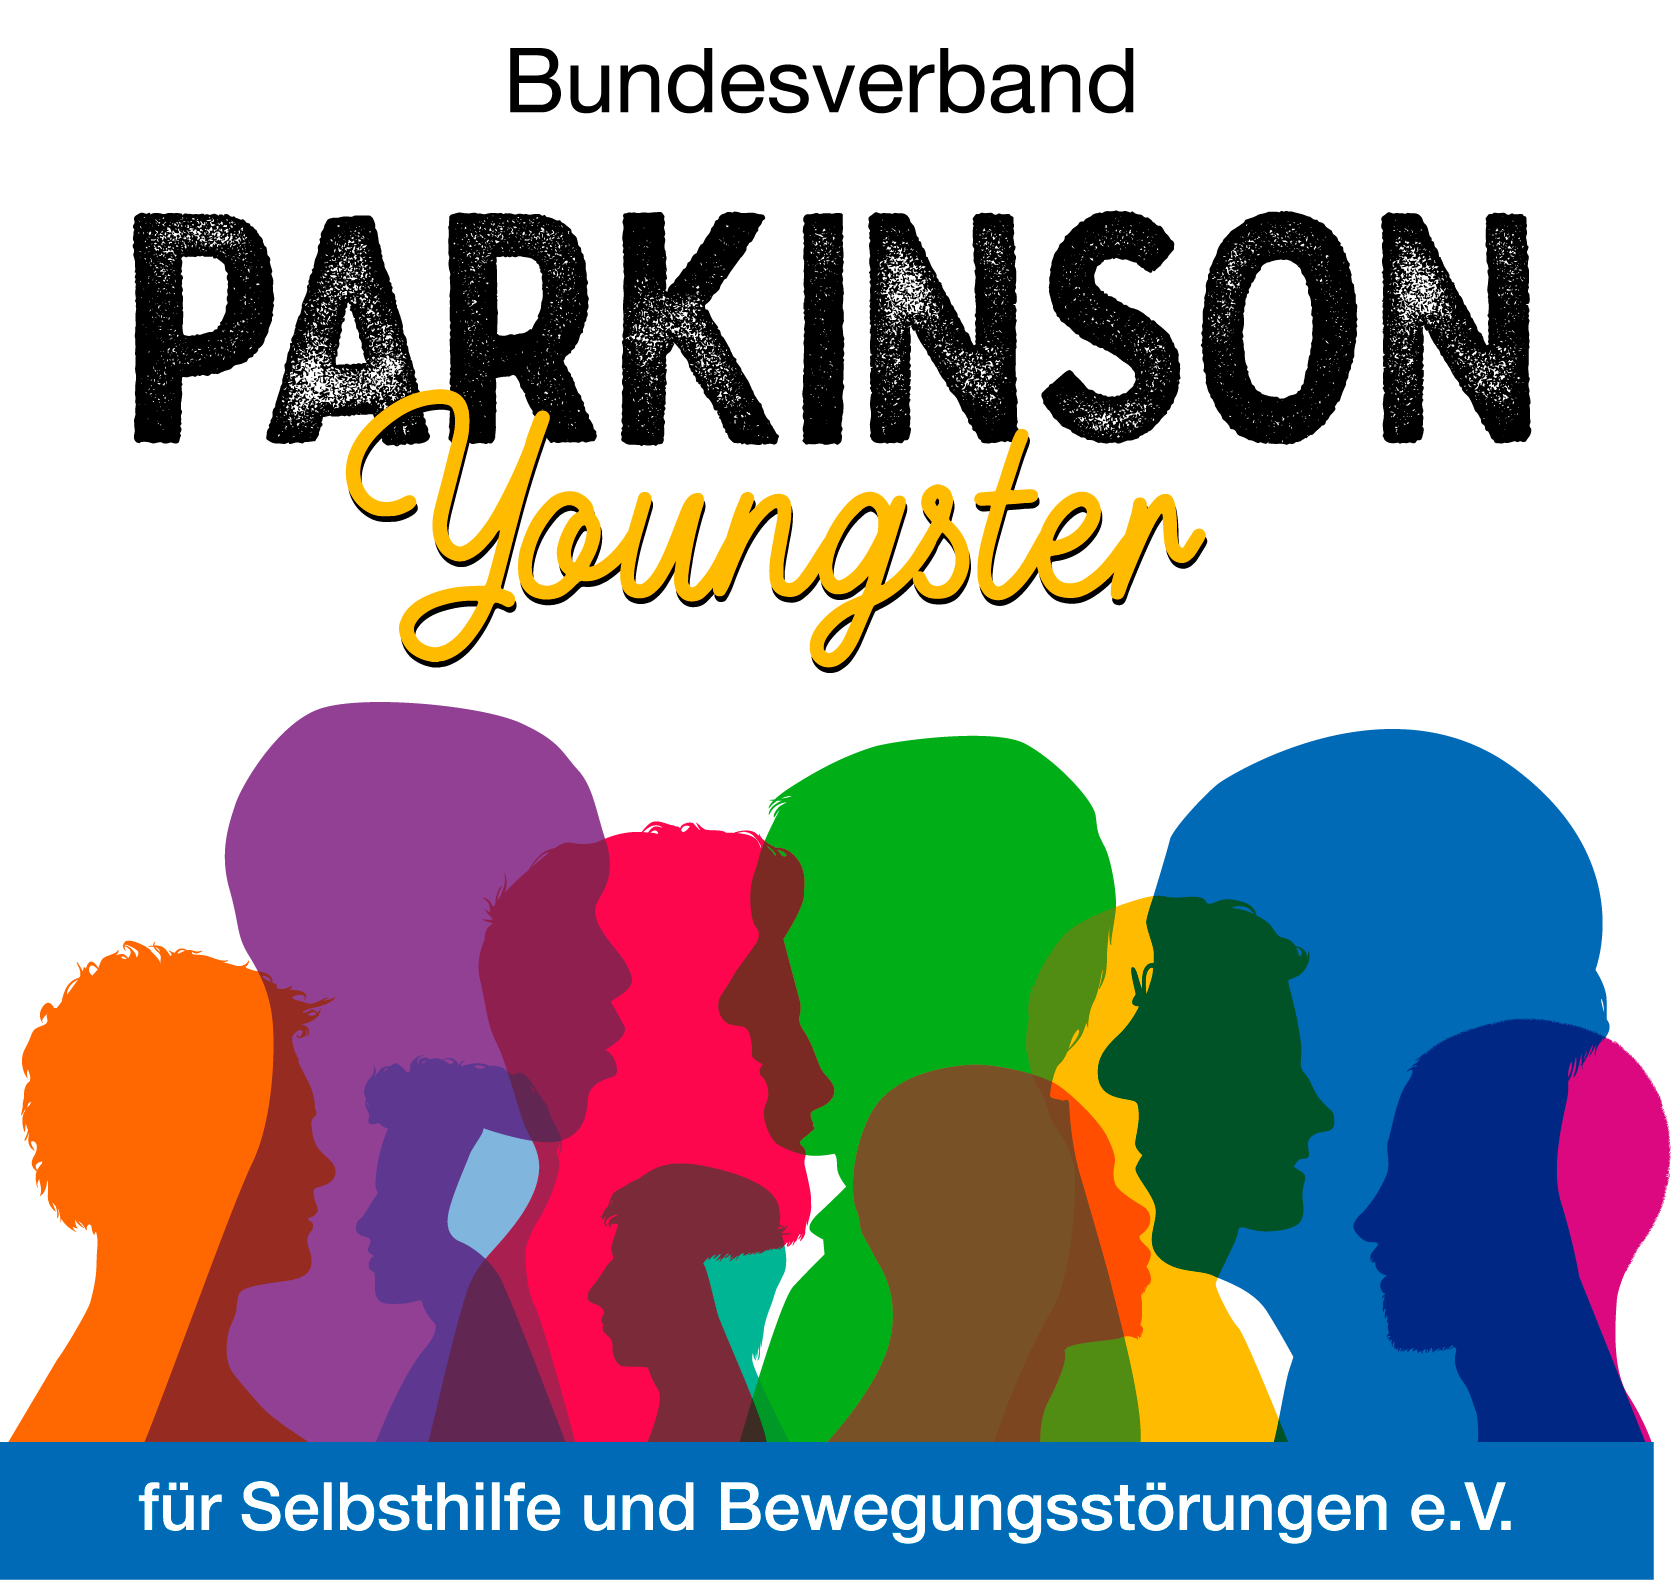 Bundesverband Parkinson Youngster e.V.